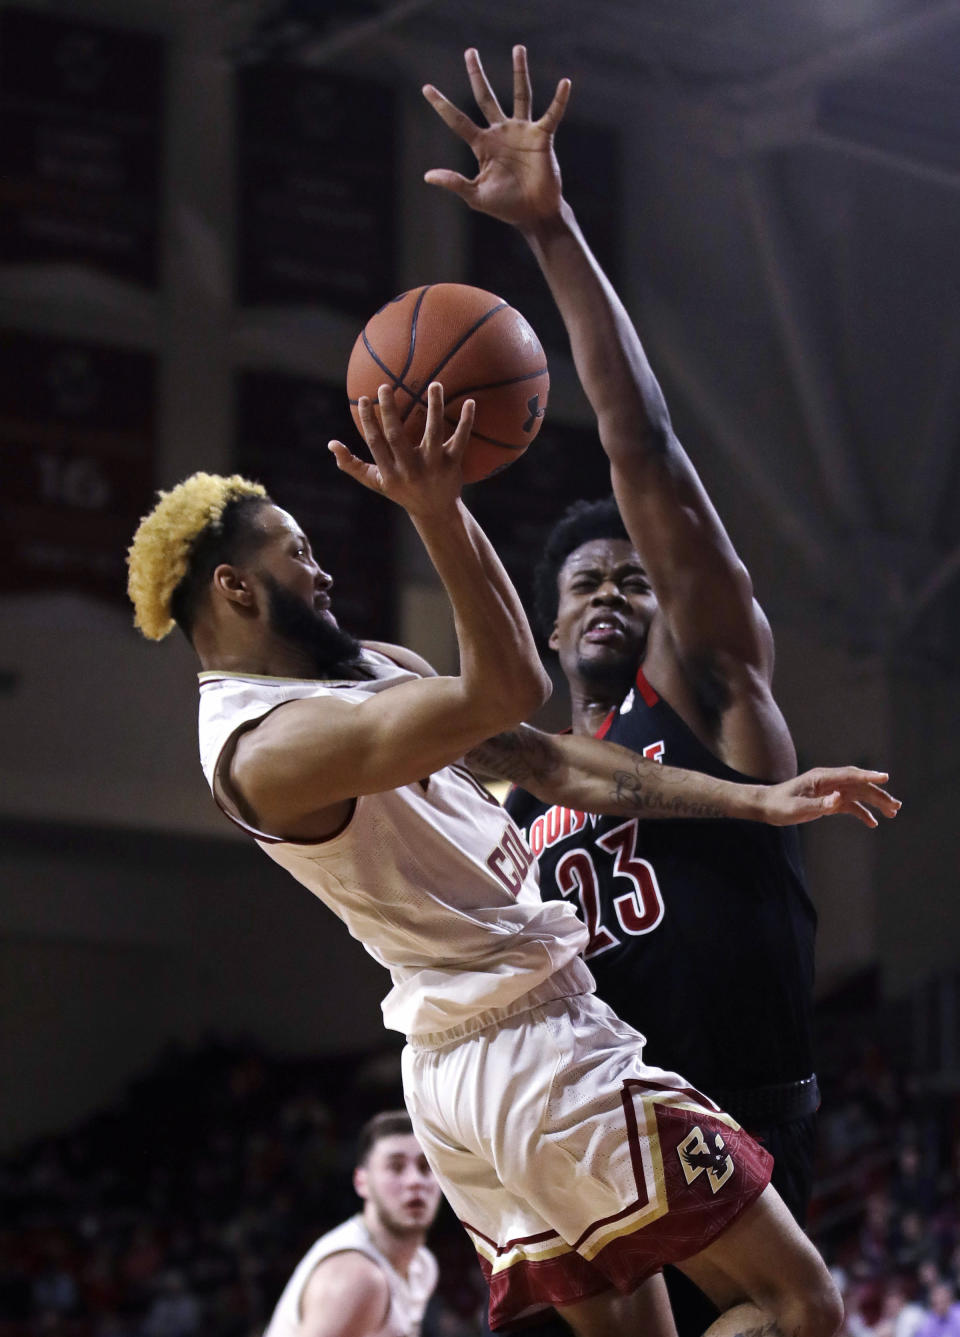 Boston College guard Ky Bowman, left, shoots as Louisville center Steven Enoch (23) defends during the second half of an NCAA college basketball game in Boston, Wednesday, Feb. 27, 2019. (AP Photo/Charles Krupa)